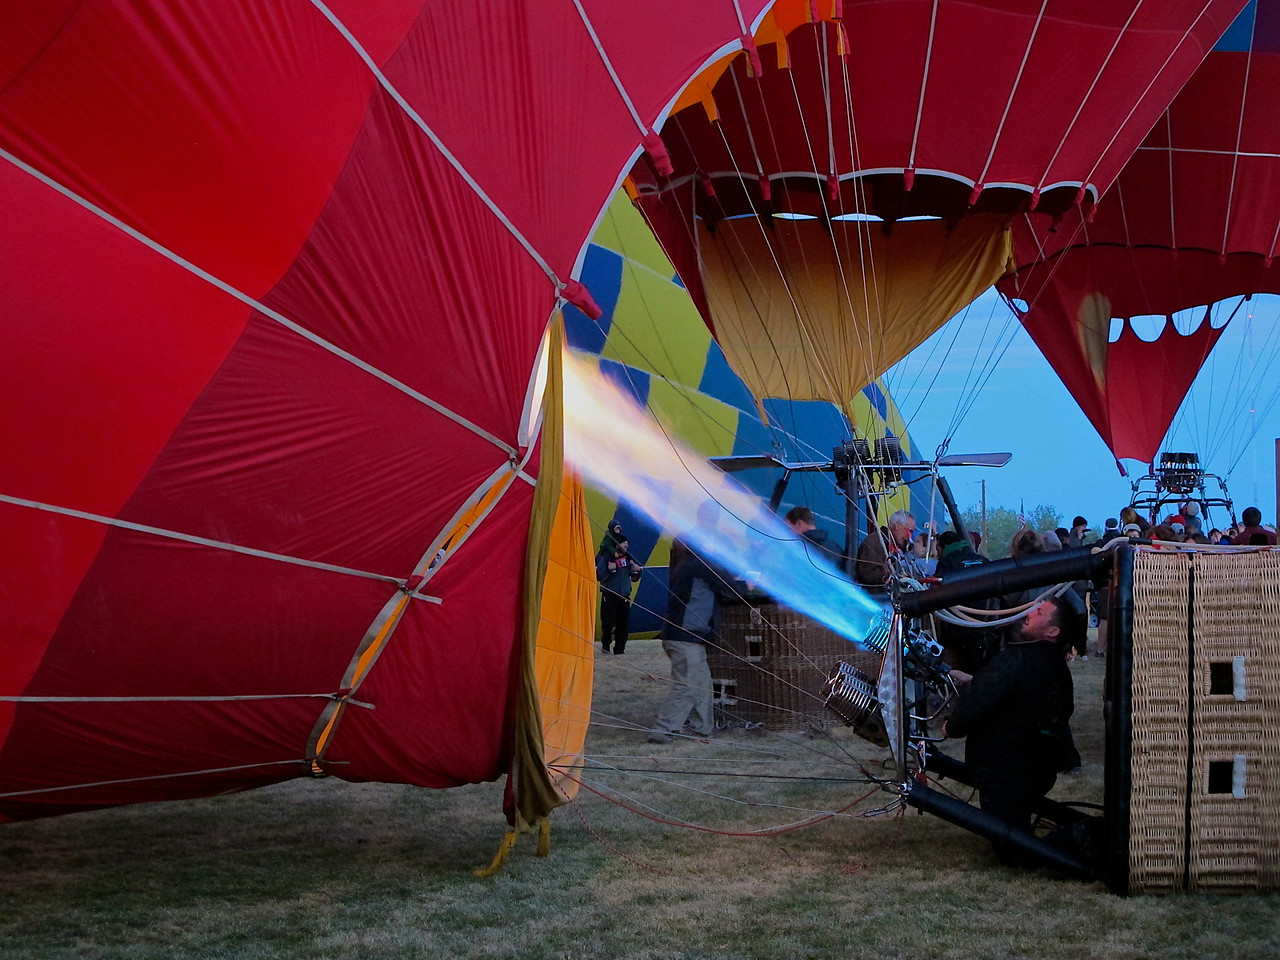 """During events involving on-field targets, such as the """"Key Grab"""" (where pilots attempt to grab prizes, including a set of keys to a new vehicle, from atop tall, flexible poles), it's not uncommon to see the same balloon make 5 or 6 passes at the targets, simply by working the """"Box"""" to keep returning to the field."""